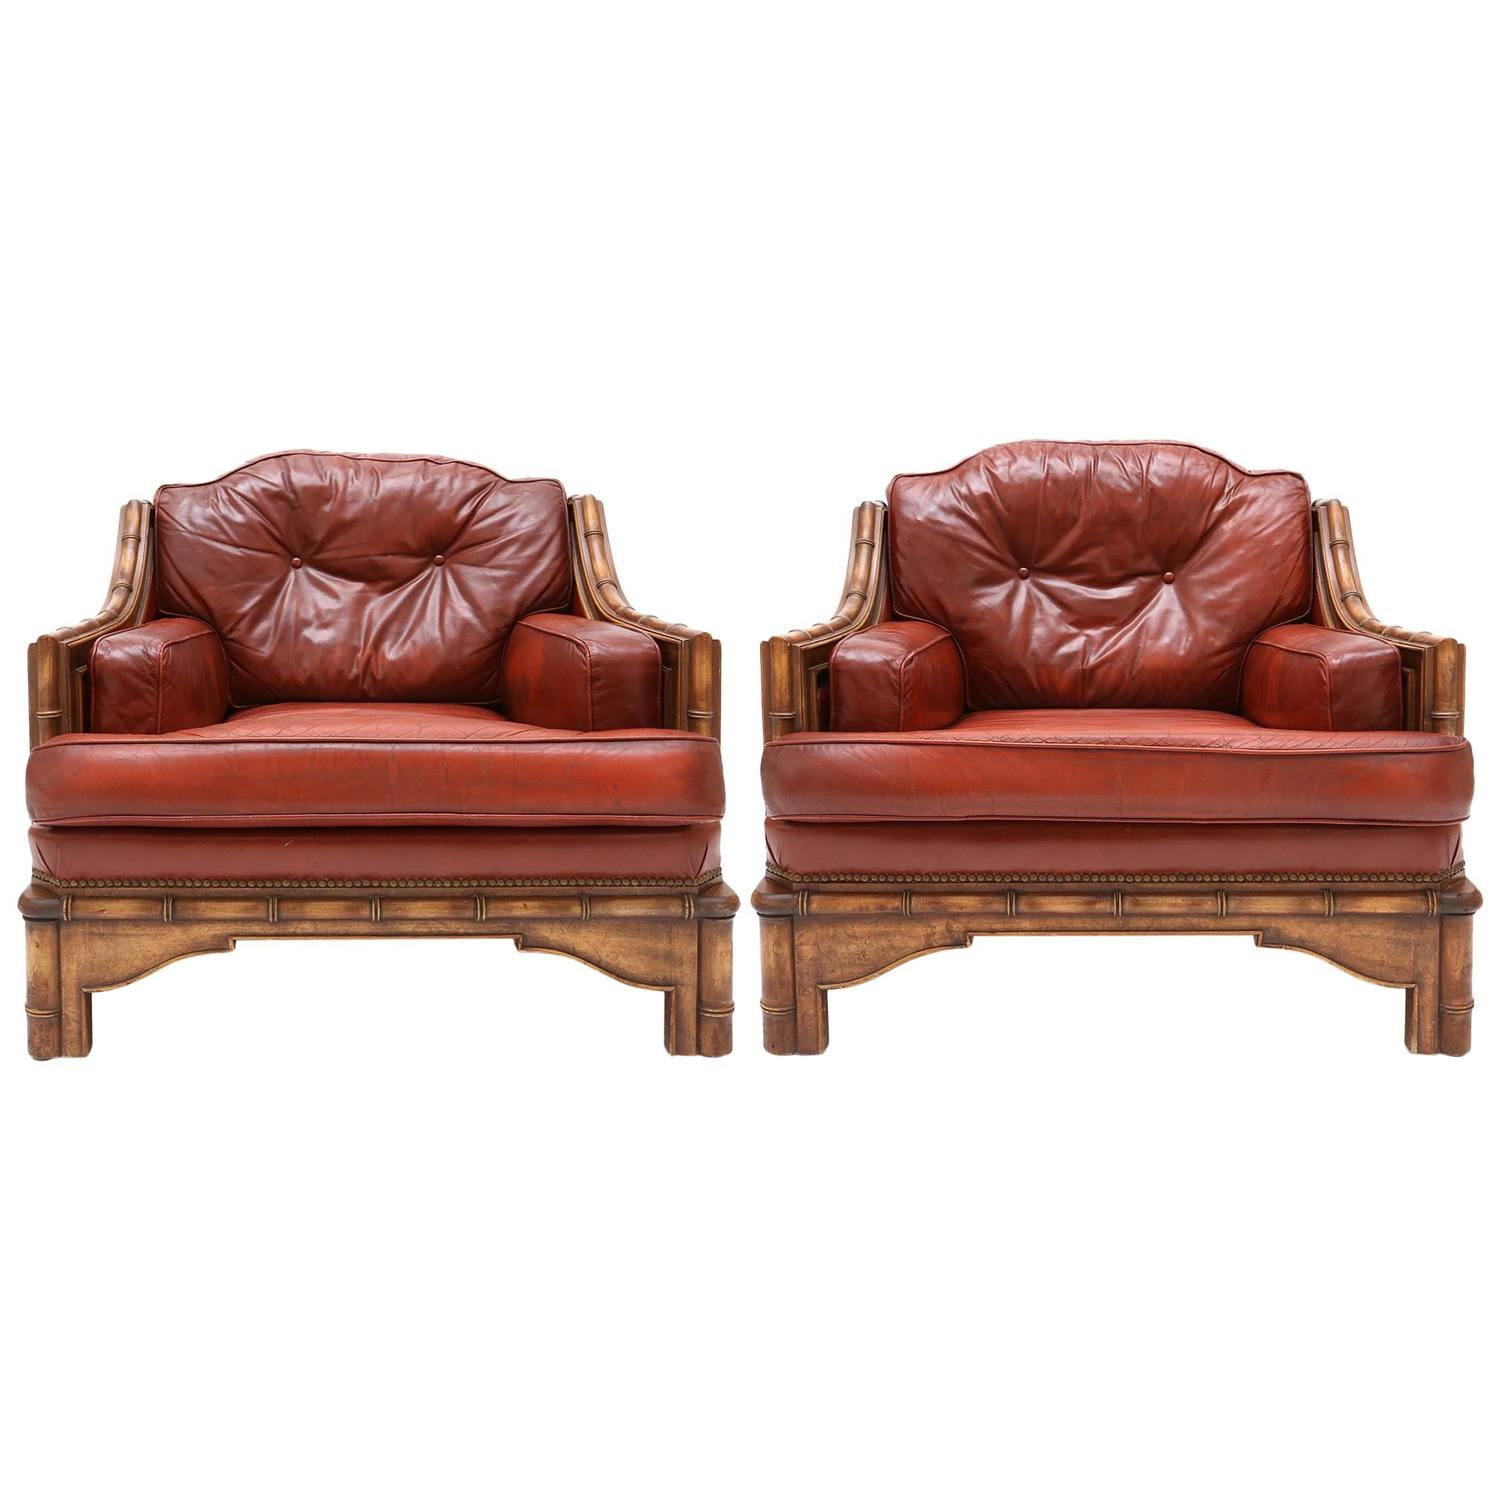 Pair of Red Leather Club Chairs For Sale at 1stdibs